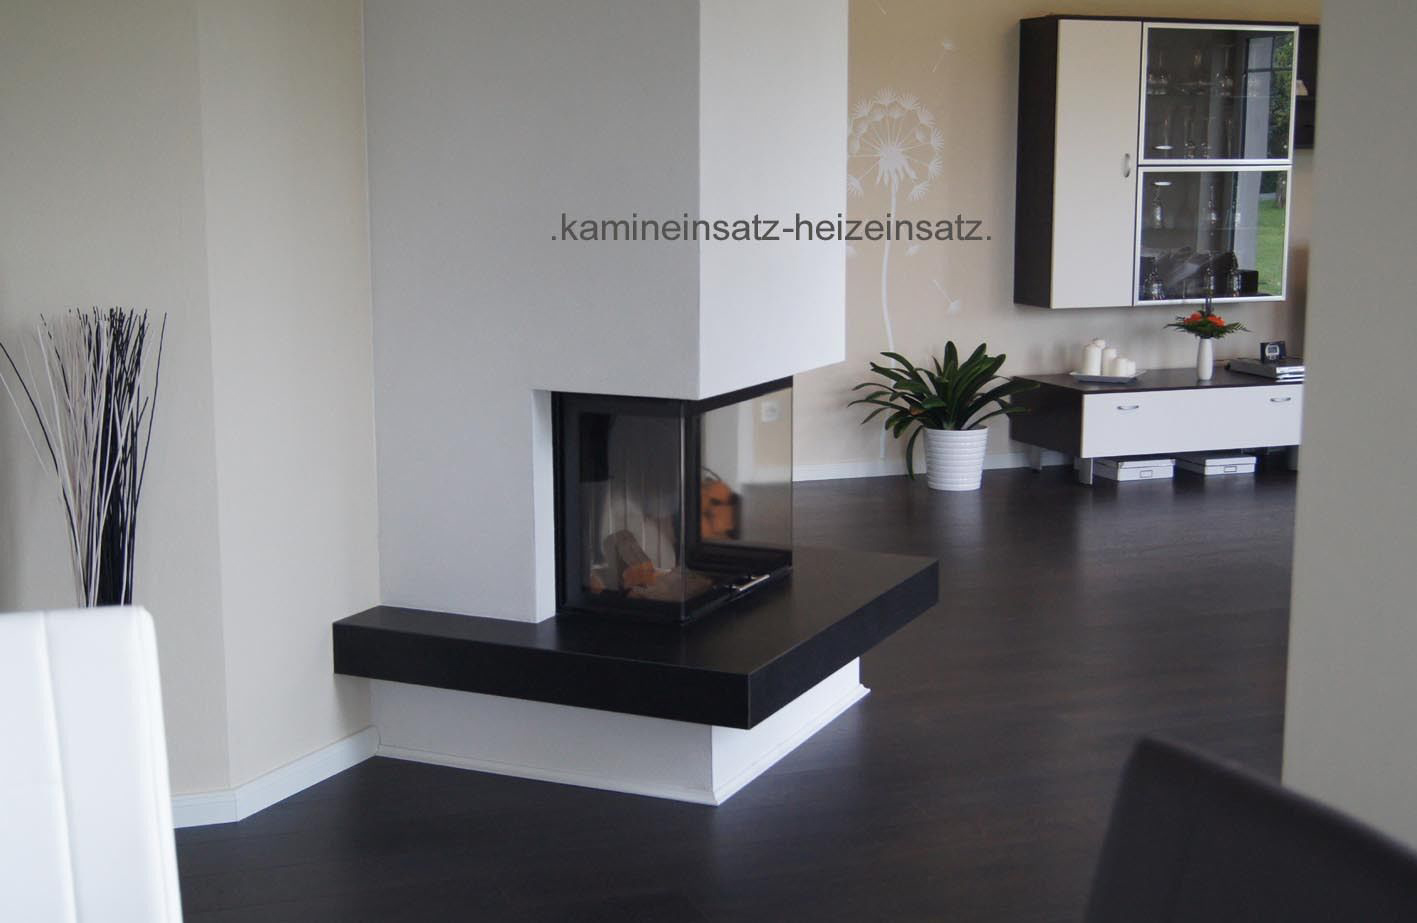 schwebender kamin brunner panoramakamin 70 25 40 2 hotline 7 21 uhr 0177 530 9030. Black Bedroom Furniture Sets. Home Design Ideas